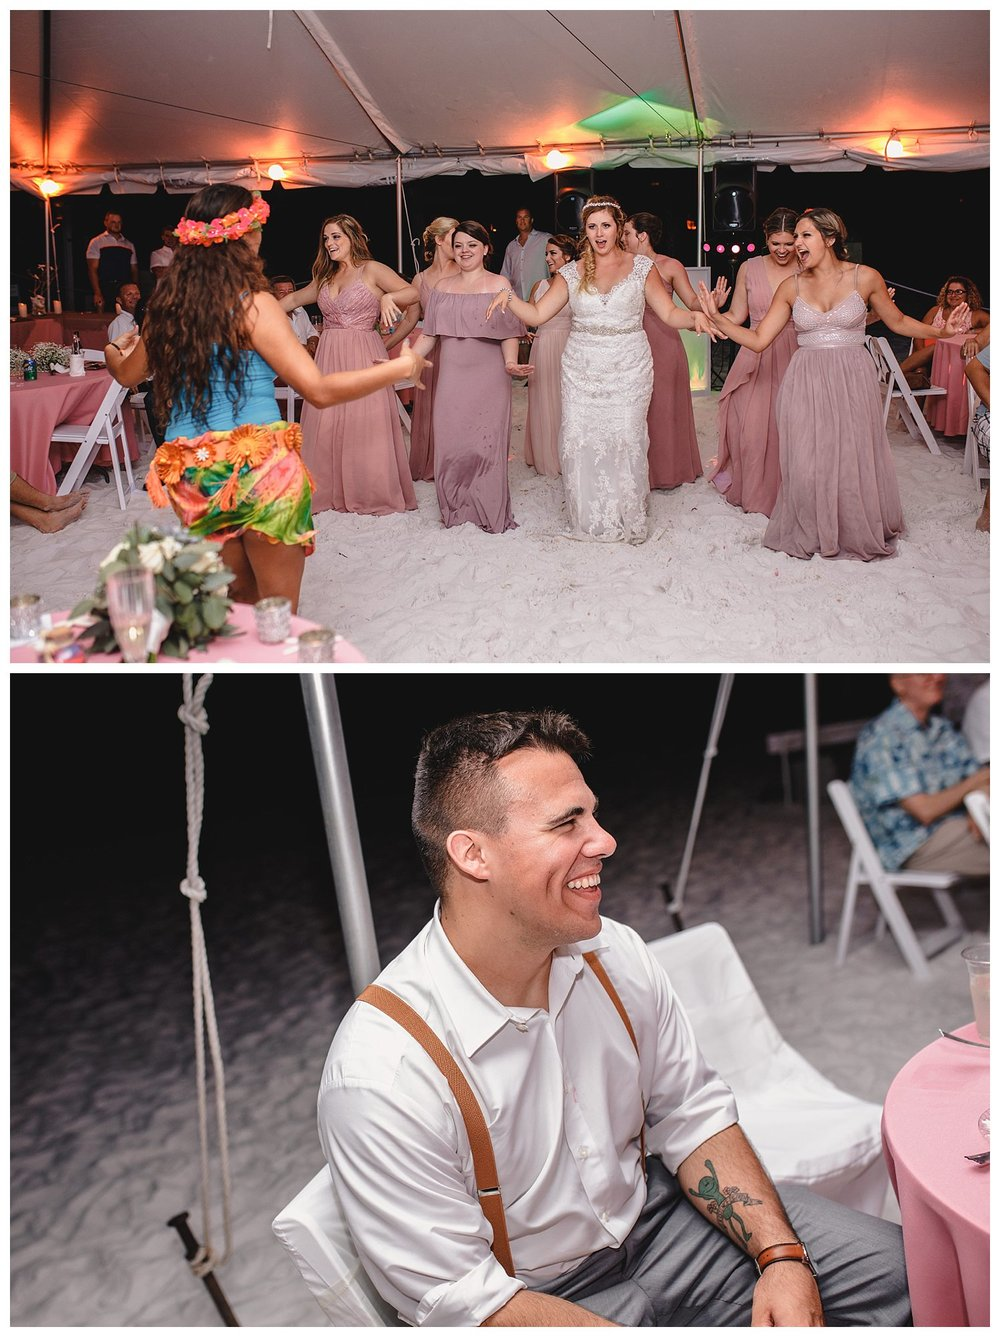 Kelsey_Diane_Photography_Destination_Wedding_Sarasota_Florida_Beach_Wedding_Alex_Austin_0688.jpg